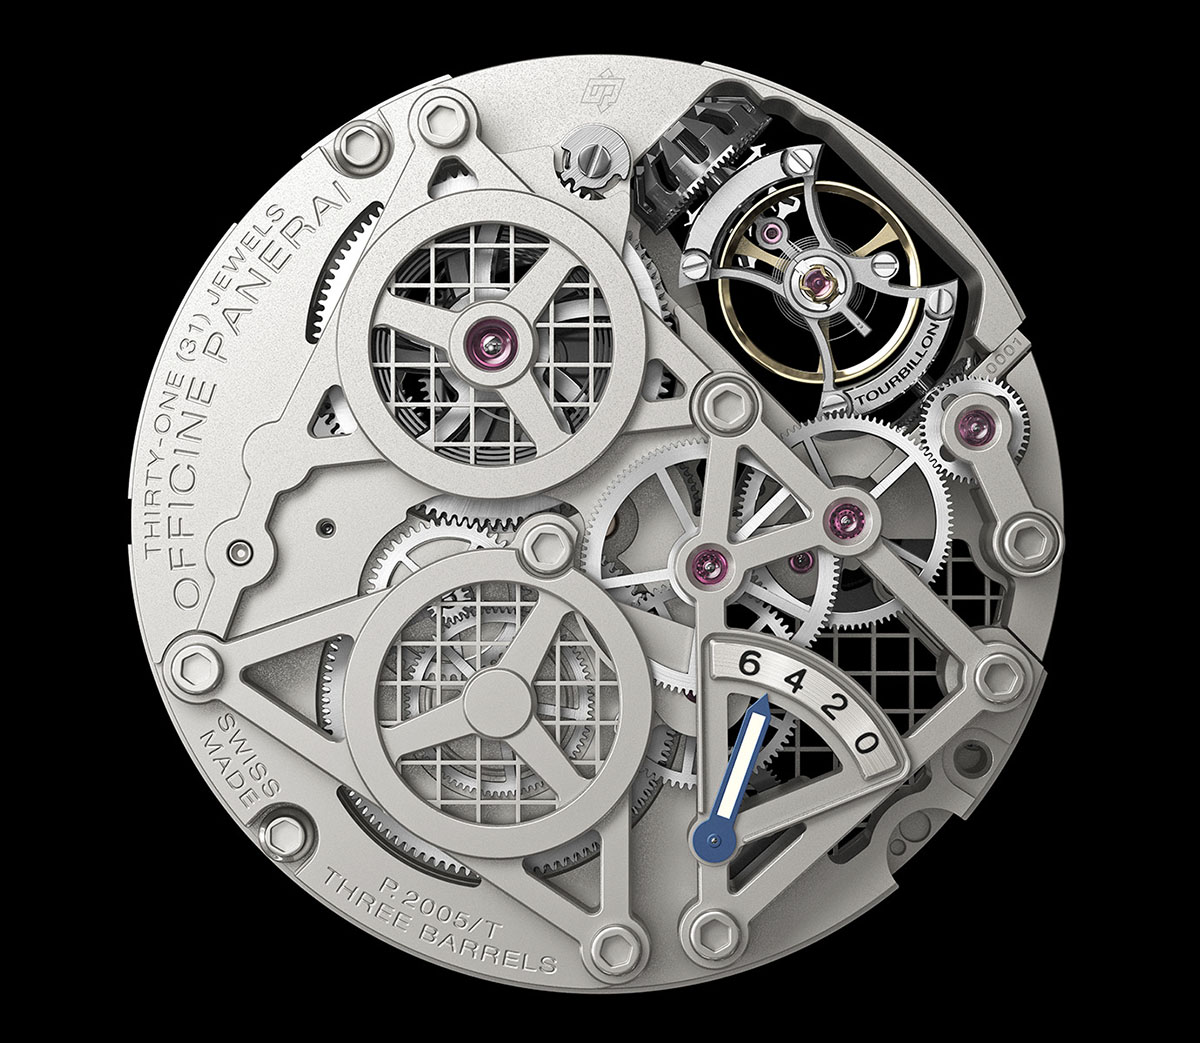 Lo Scienziato – The Luminor 1950 Tourbillon GMT Titanio 5